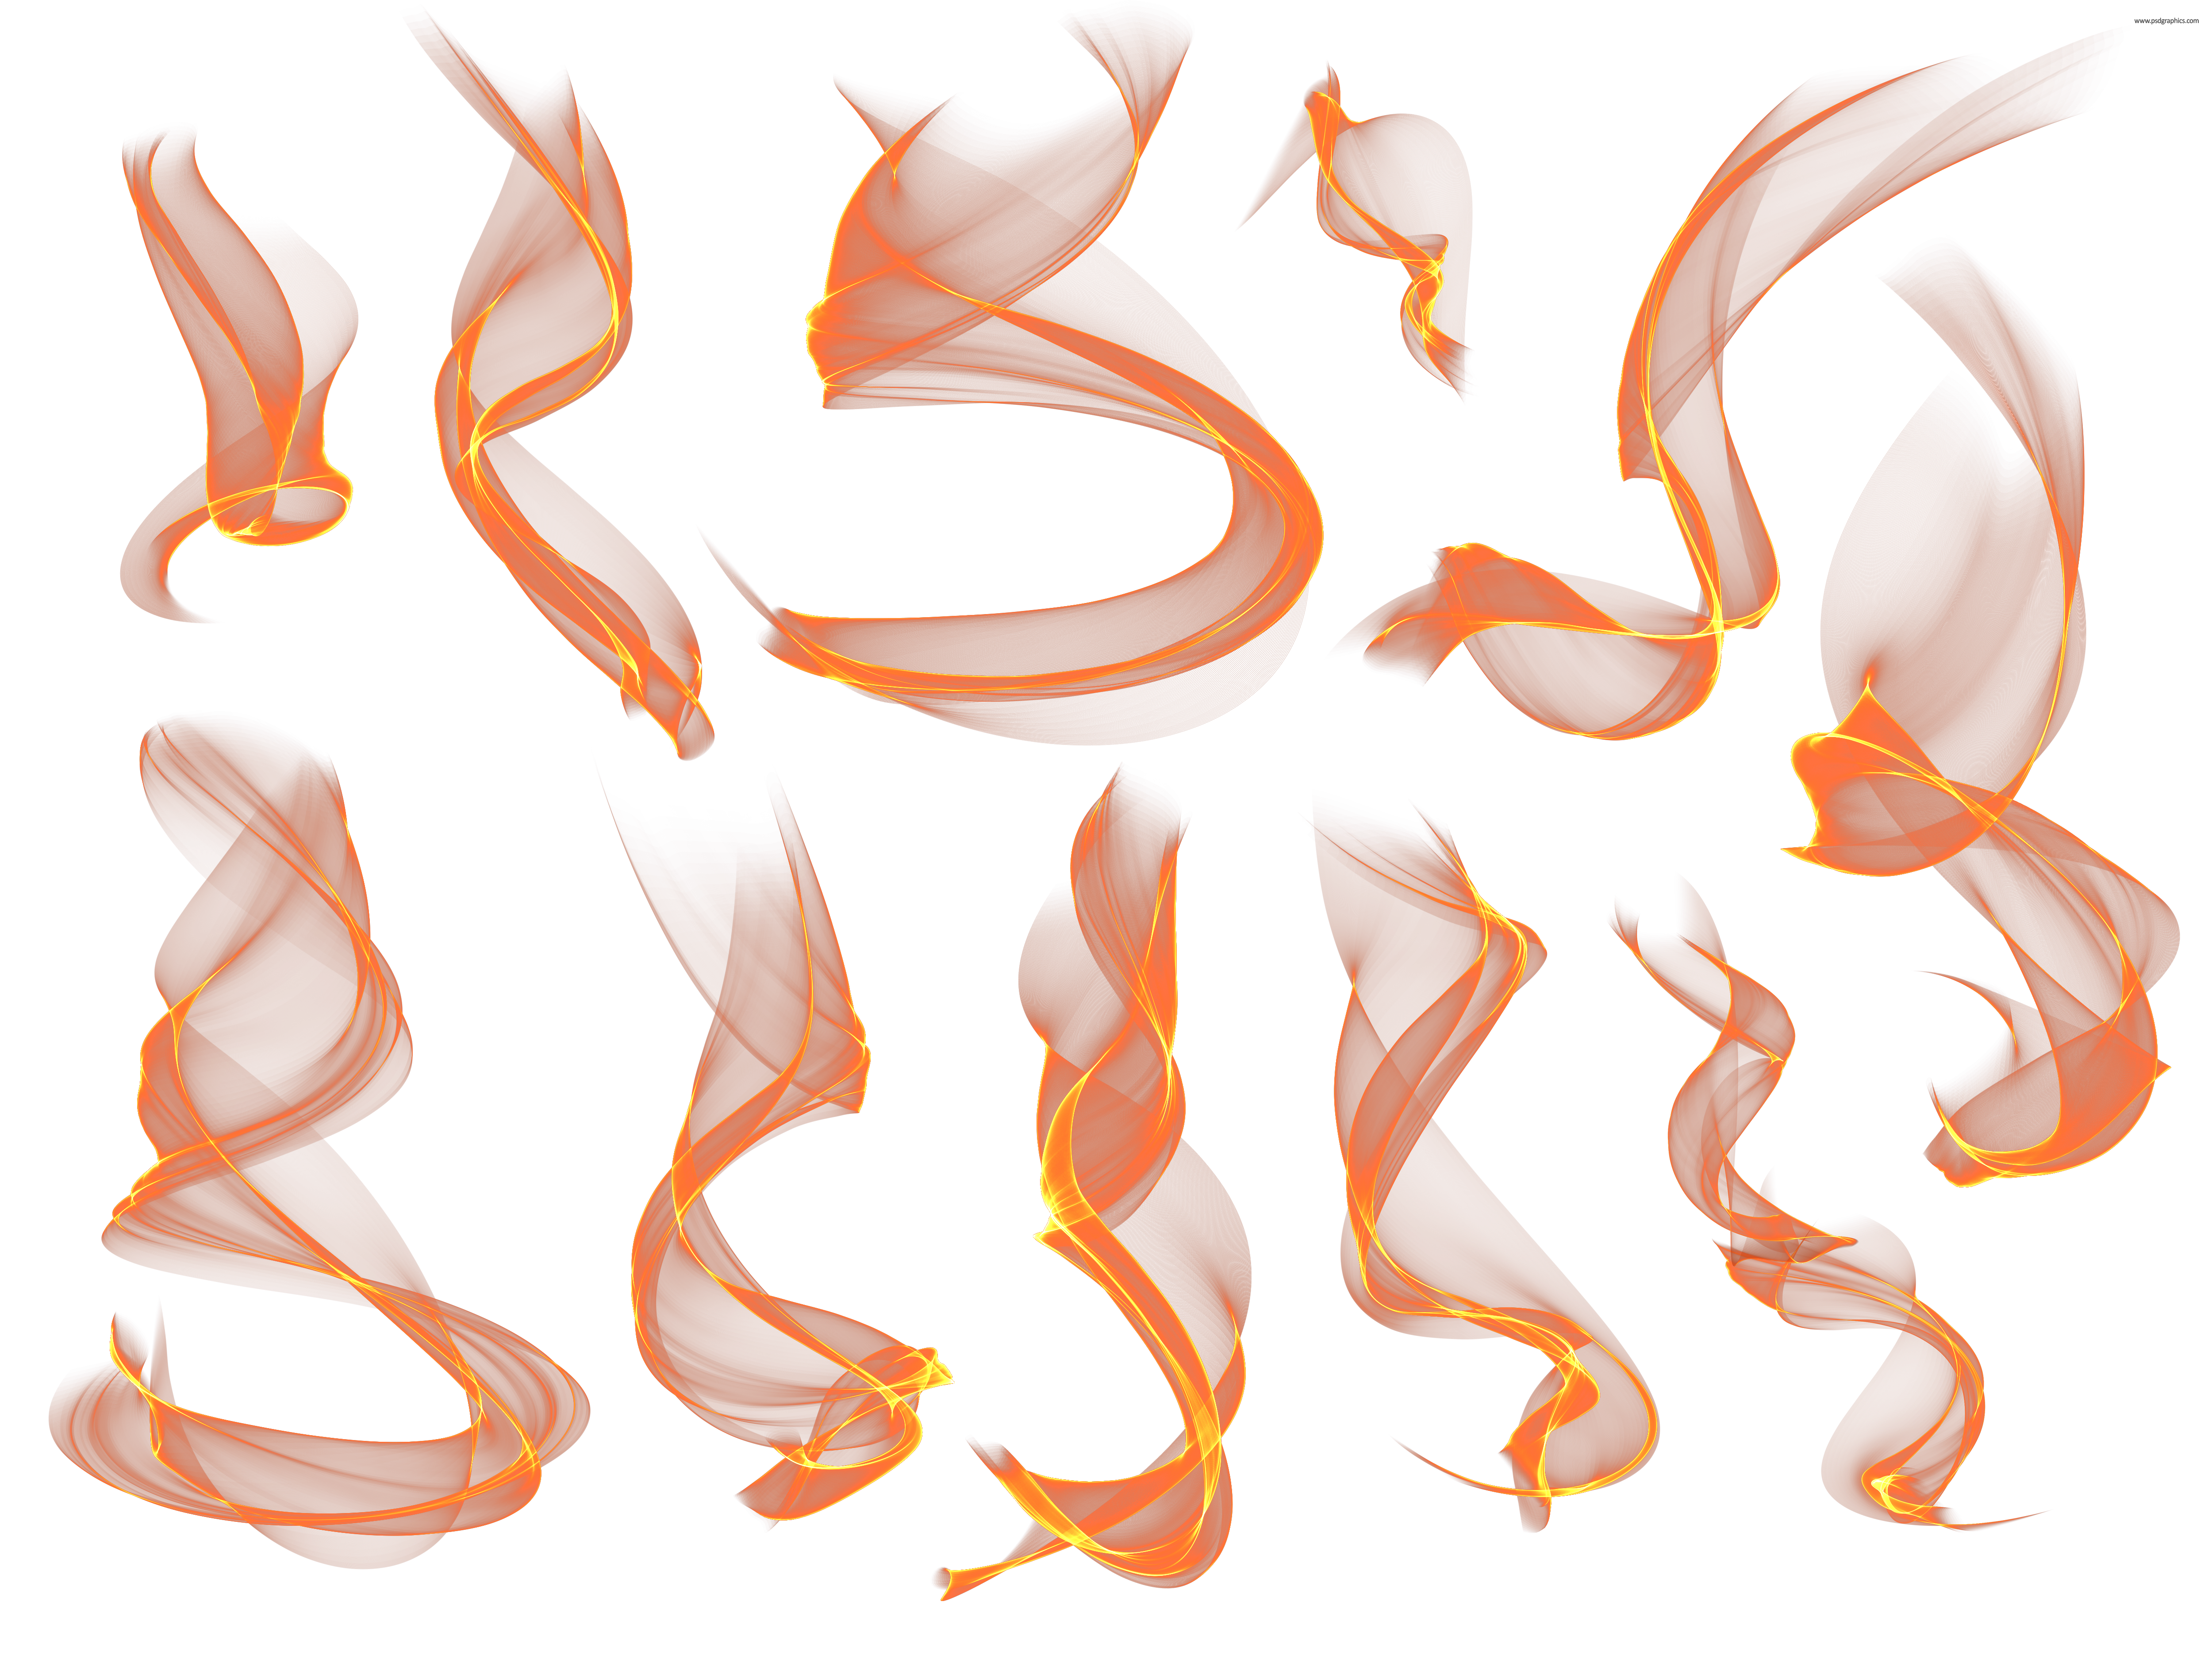 Png files for photoshop. Flame effects format psdgraphics